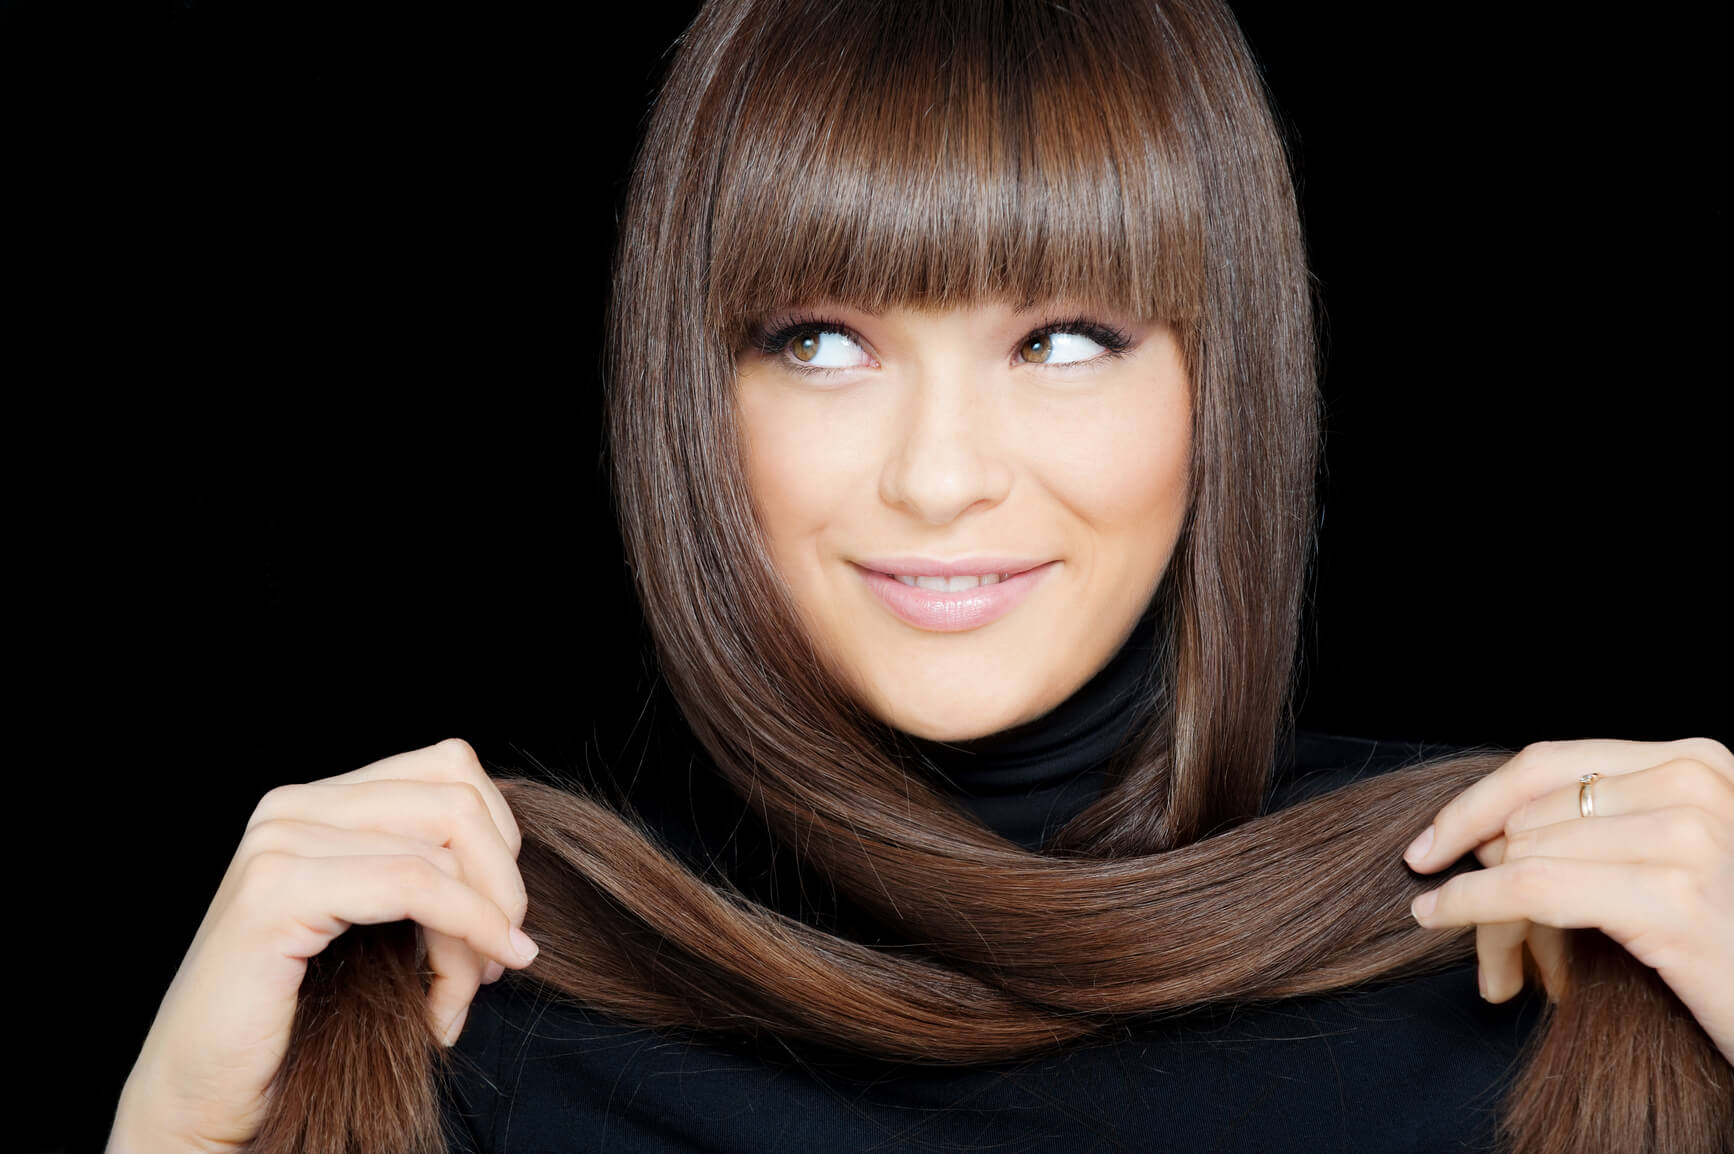 lady with straight brown hair